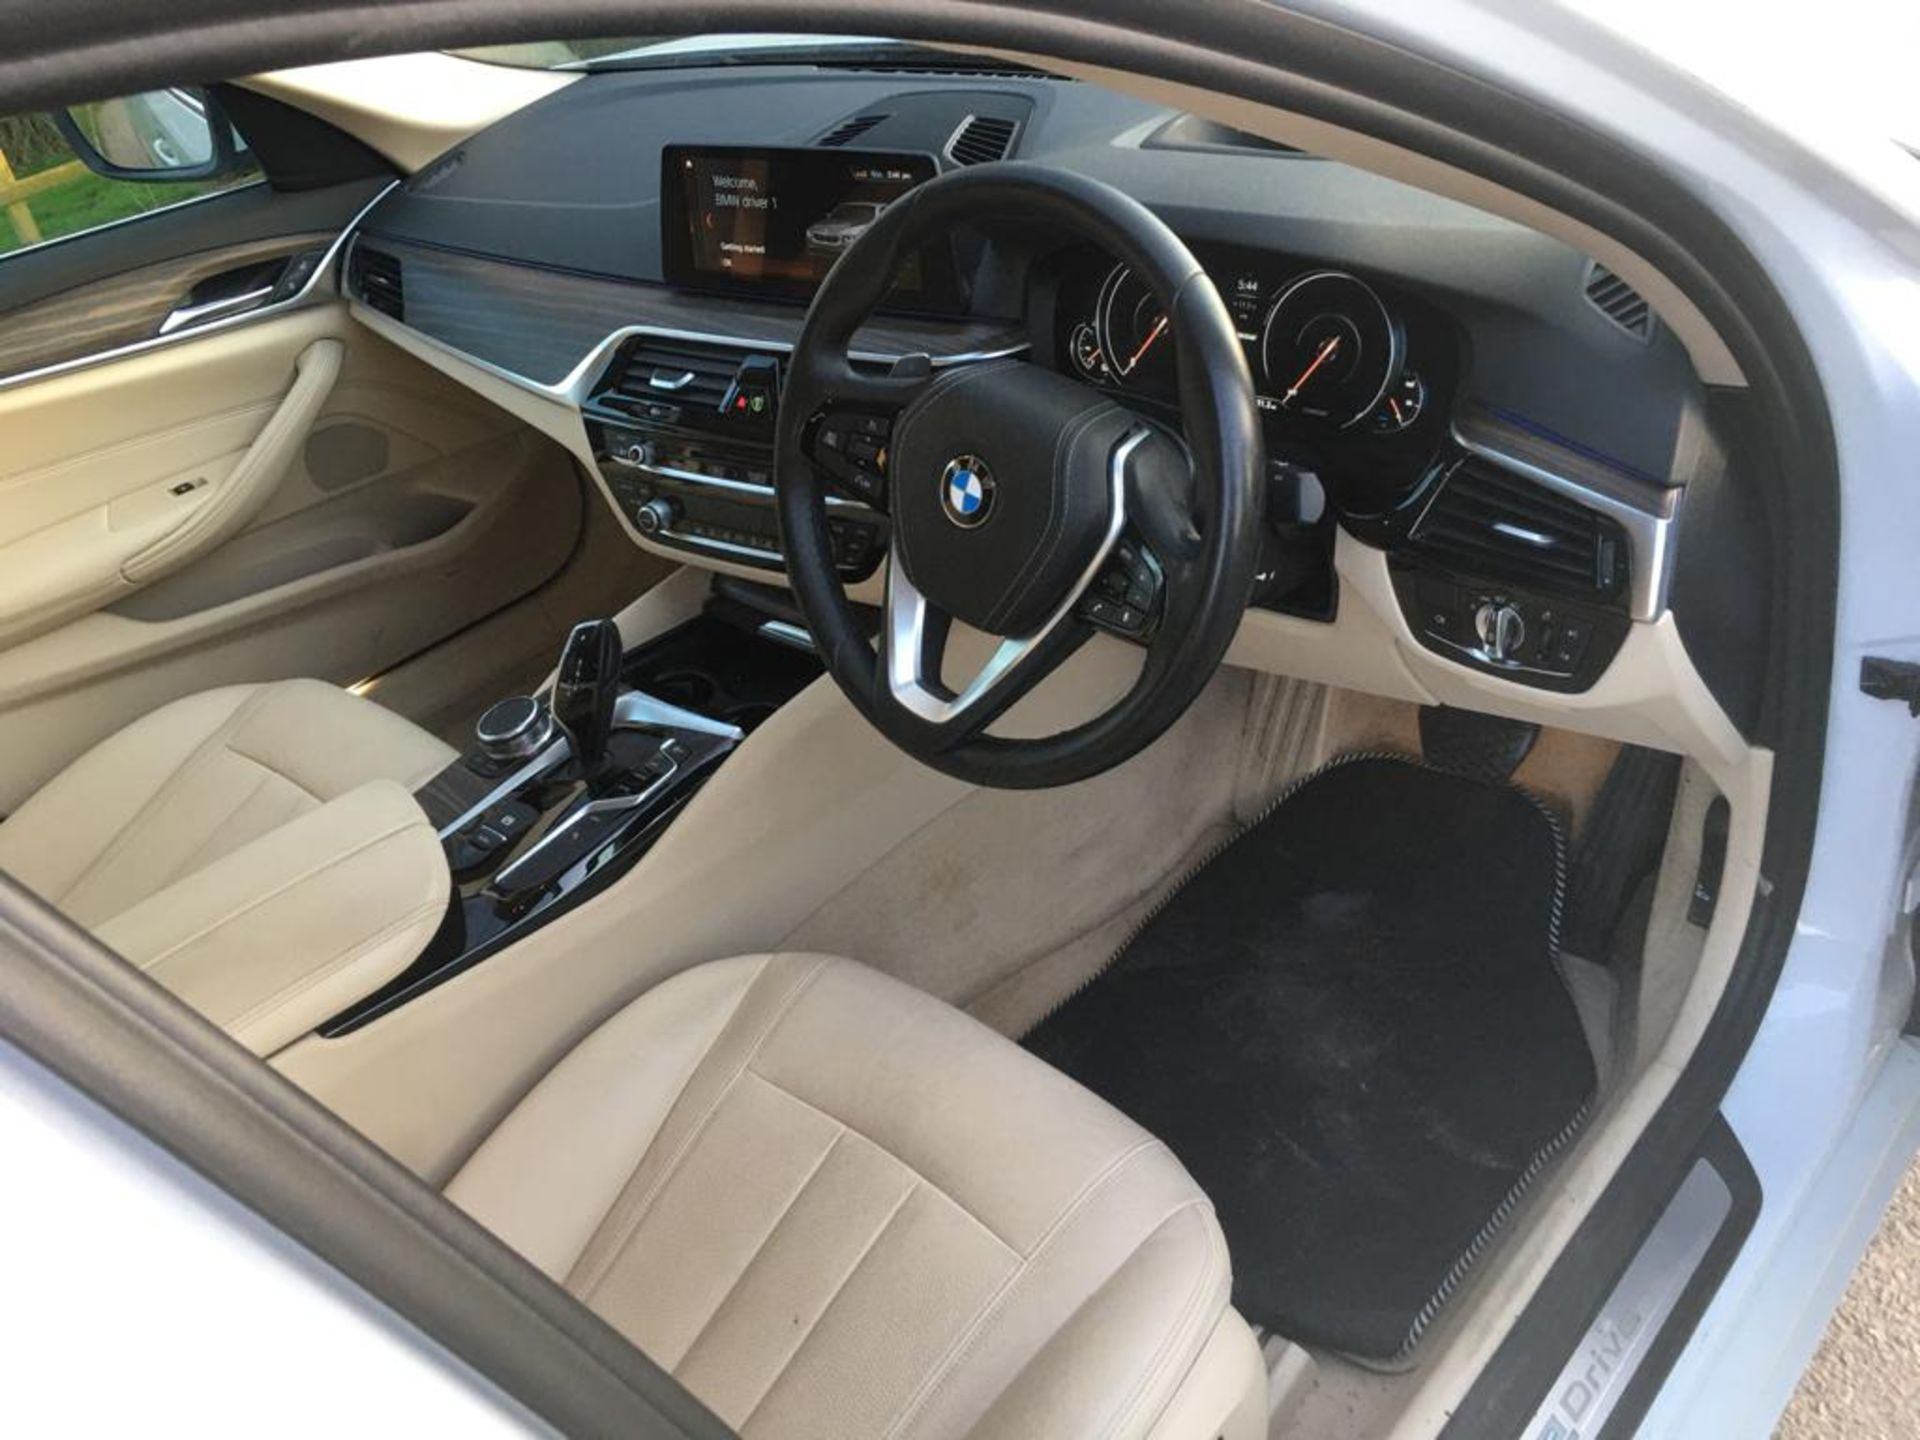 2018 BMW 530E 2.0 SE HYBIRD SALOON AUTOMATIC - Image 13 of 34